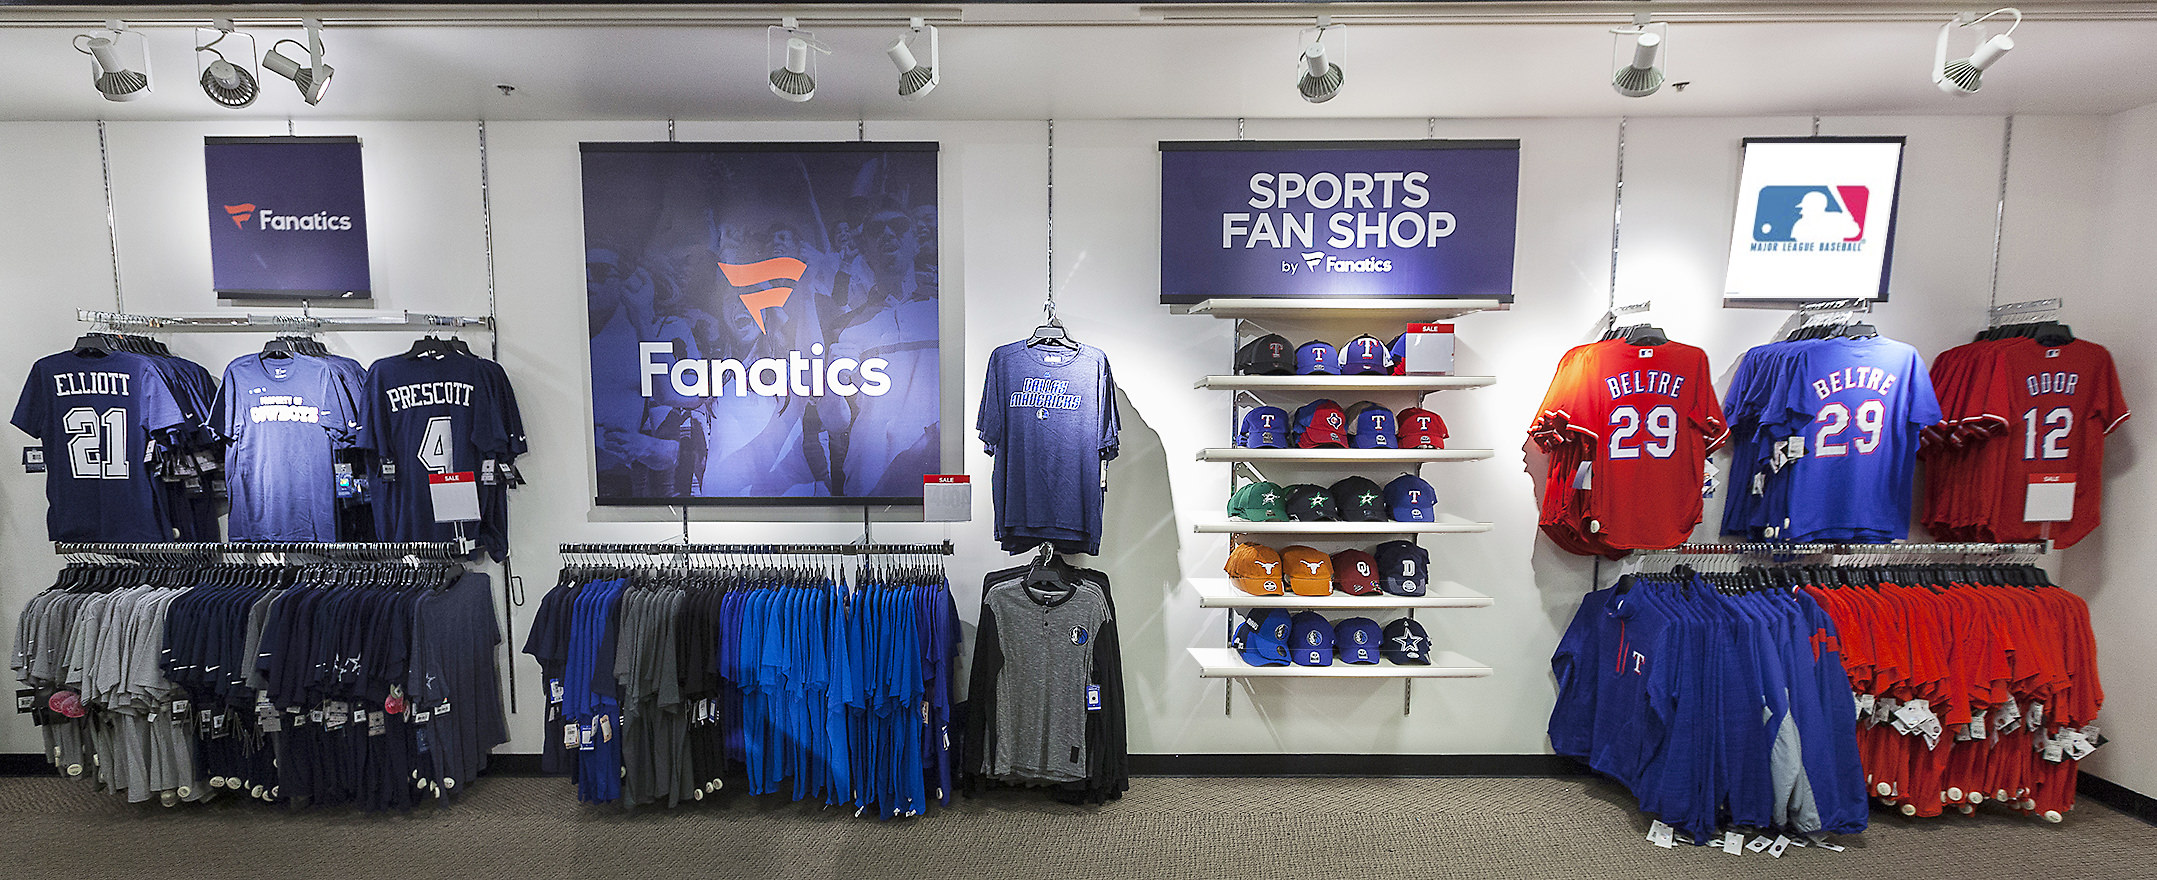 Fanatics section of sports apparel inside a JCPenney